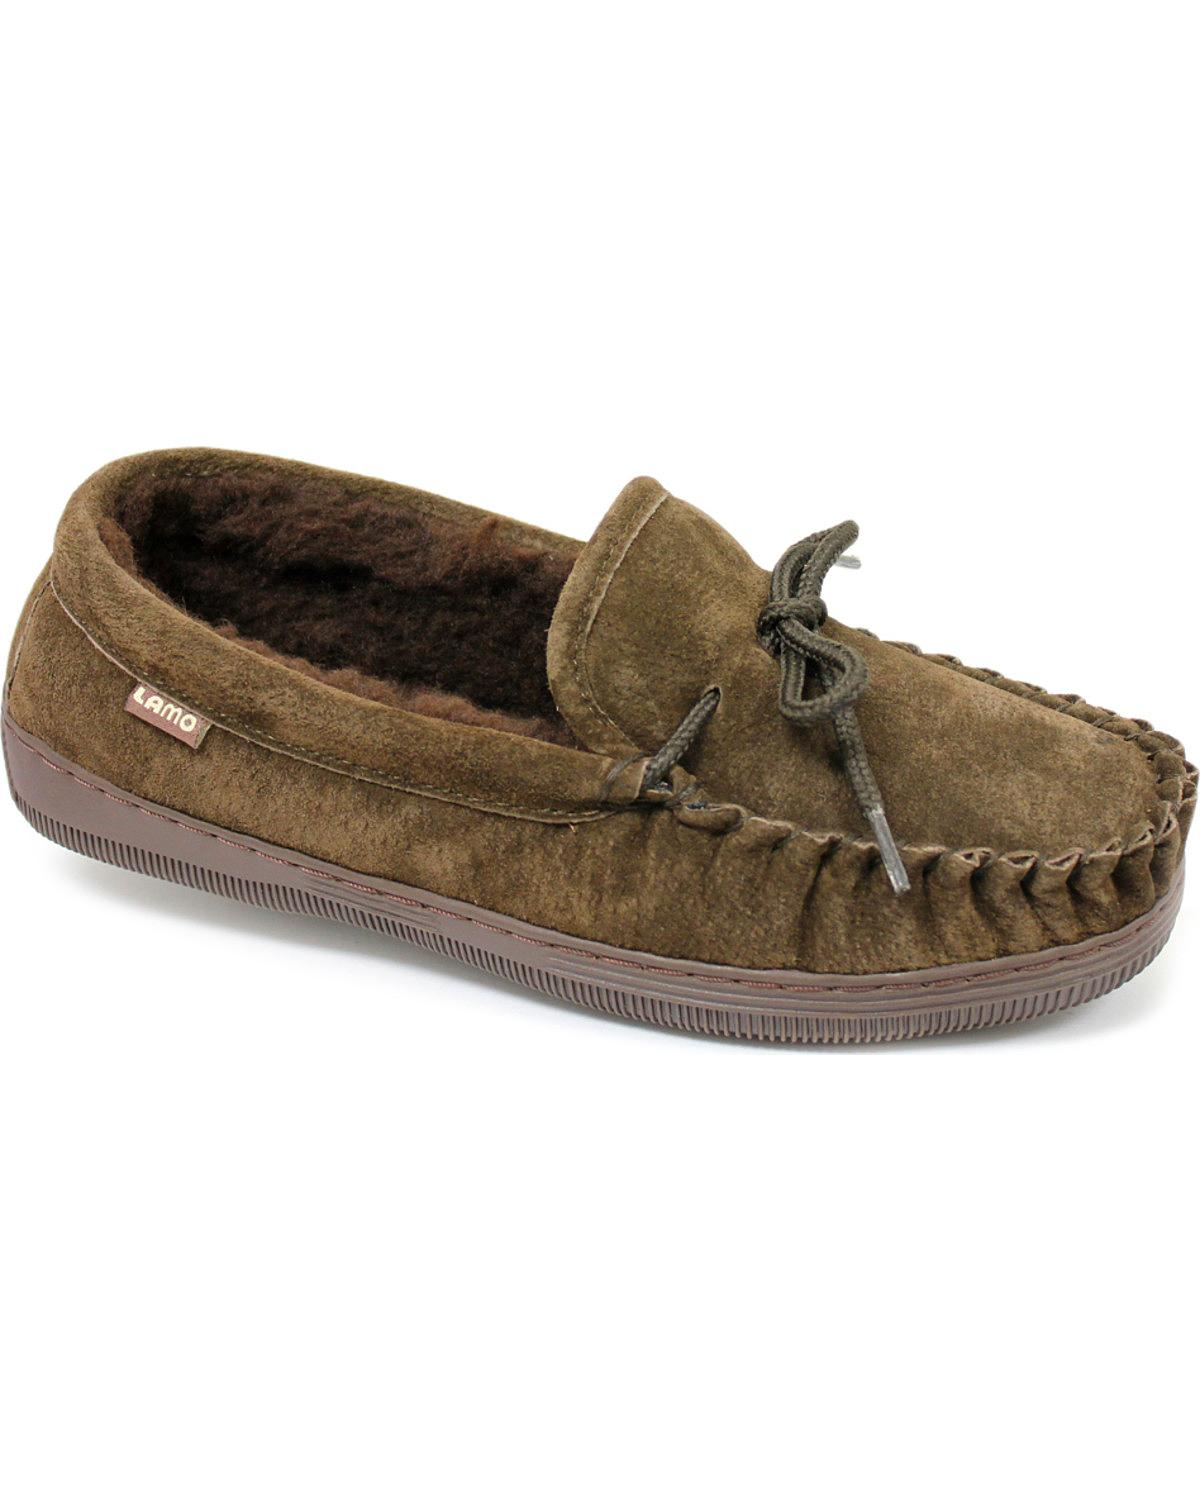 Lamo Footwear Women's Leather Moccasin Slippers P002w-92 by Lamo Footwear